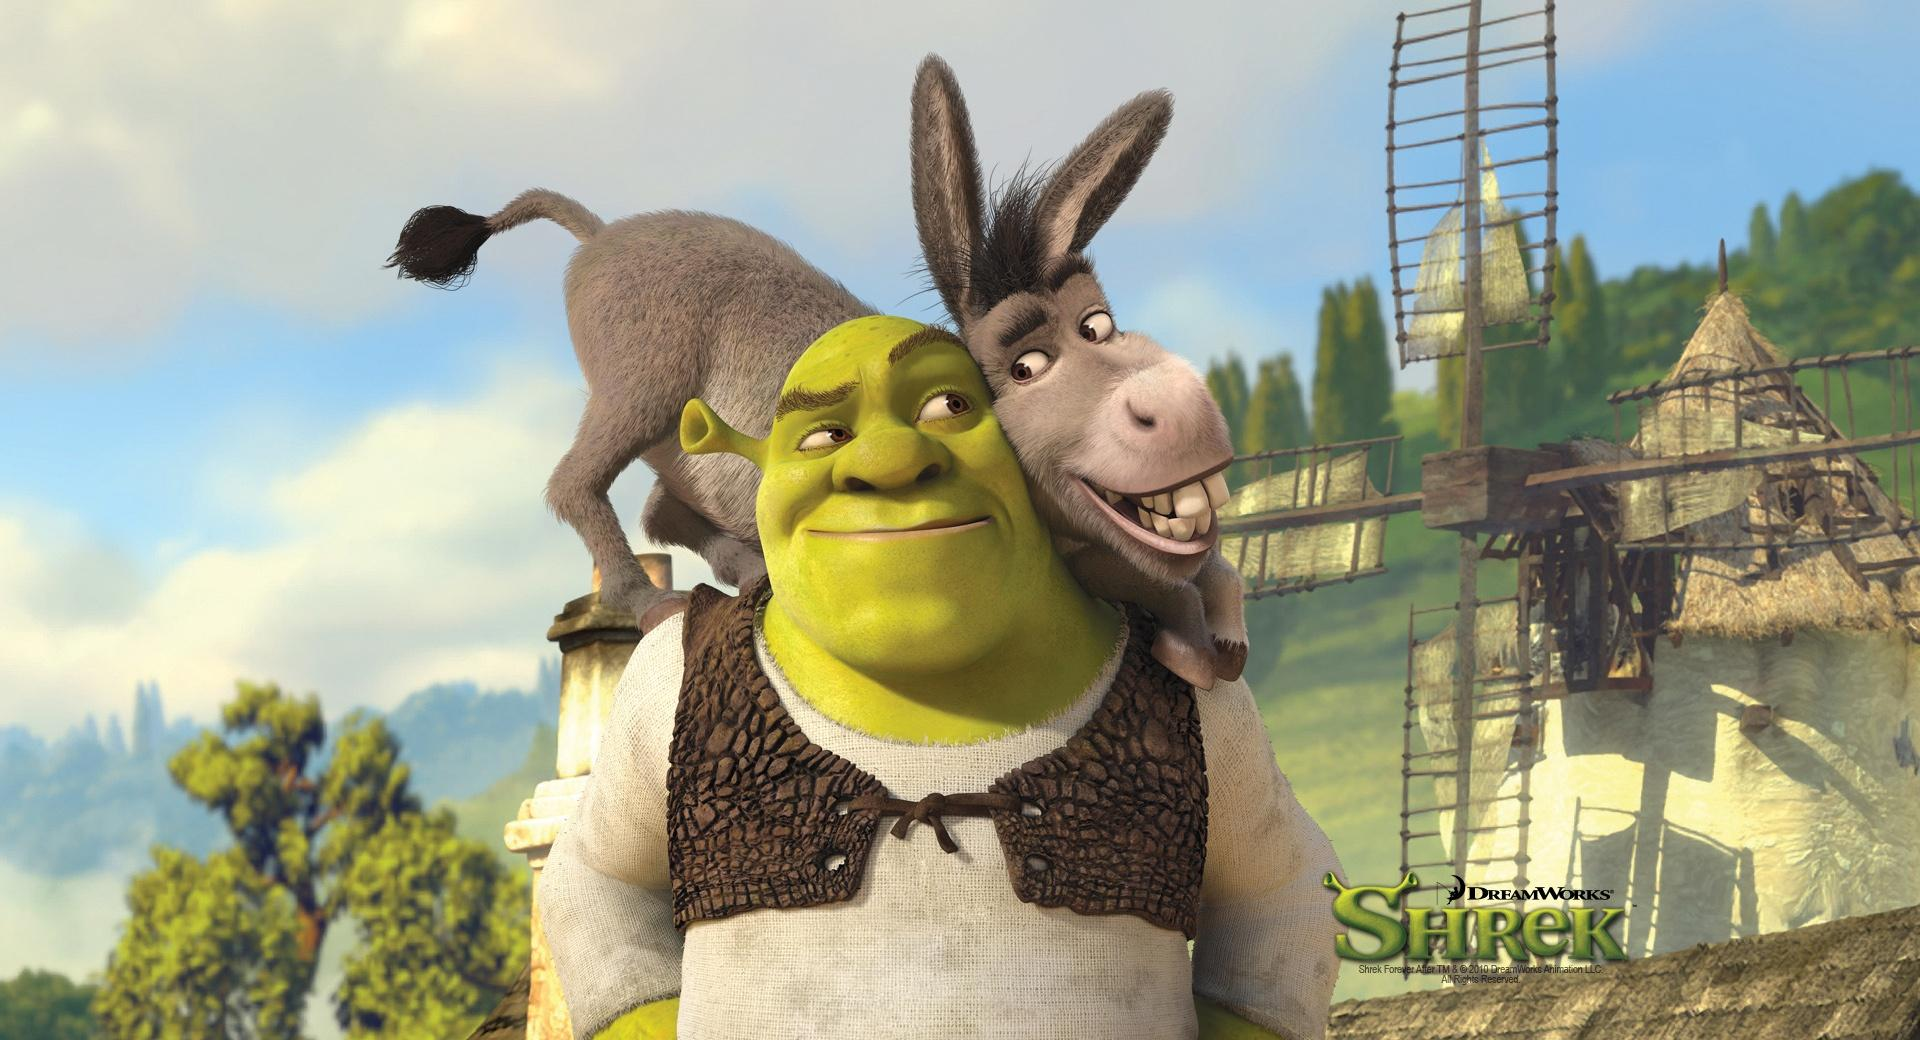 Shrek And Donkey, Shrek Forever After wallpapers HD quality